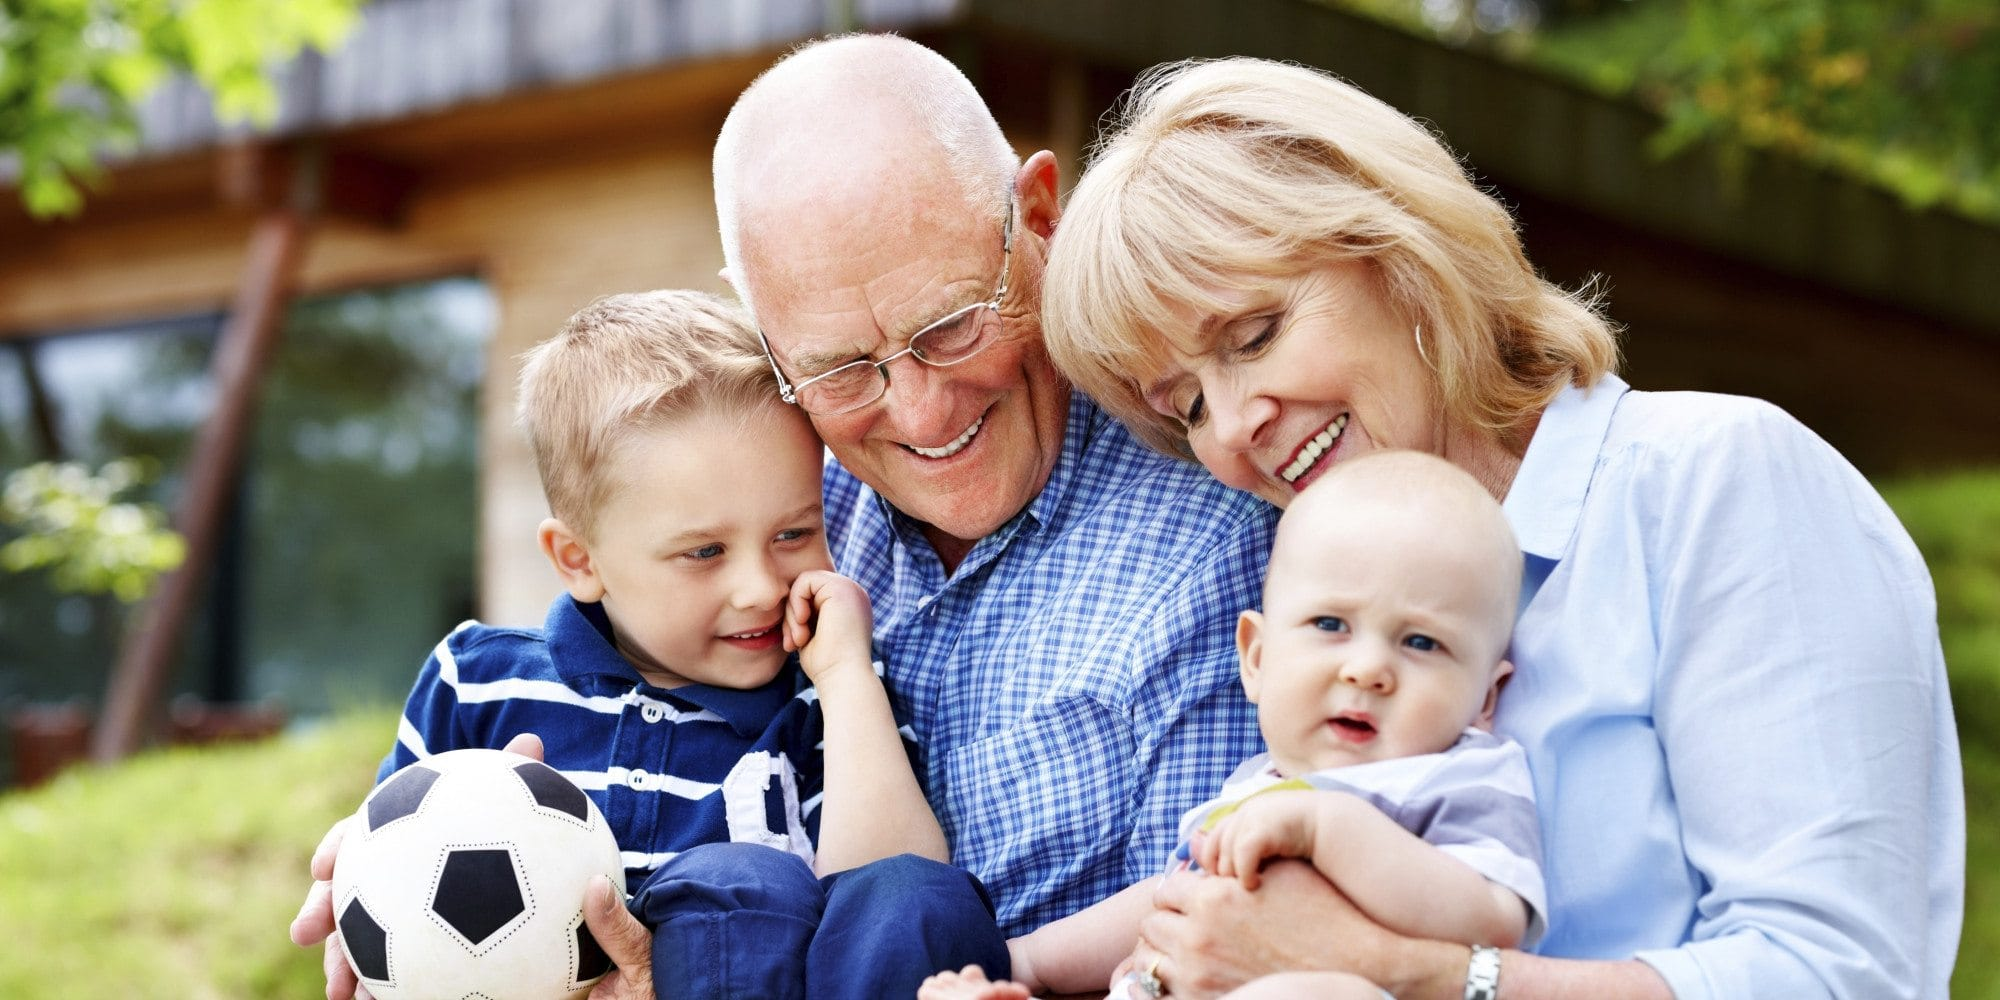 child custody between grandparents The child's parents consent to grandparent custody the child has lived with a grandparent or grandparents for a year or more in all child custody cases, courts attempt to determine what custody arrangement is best for the child.